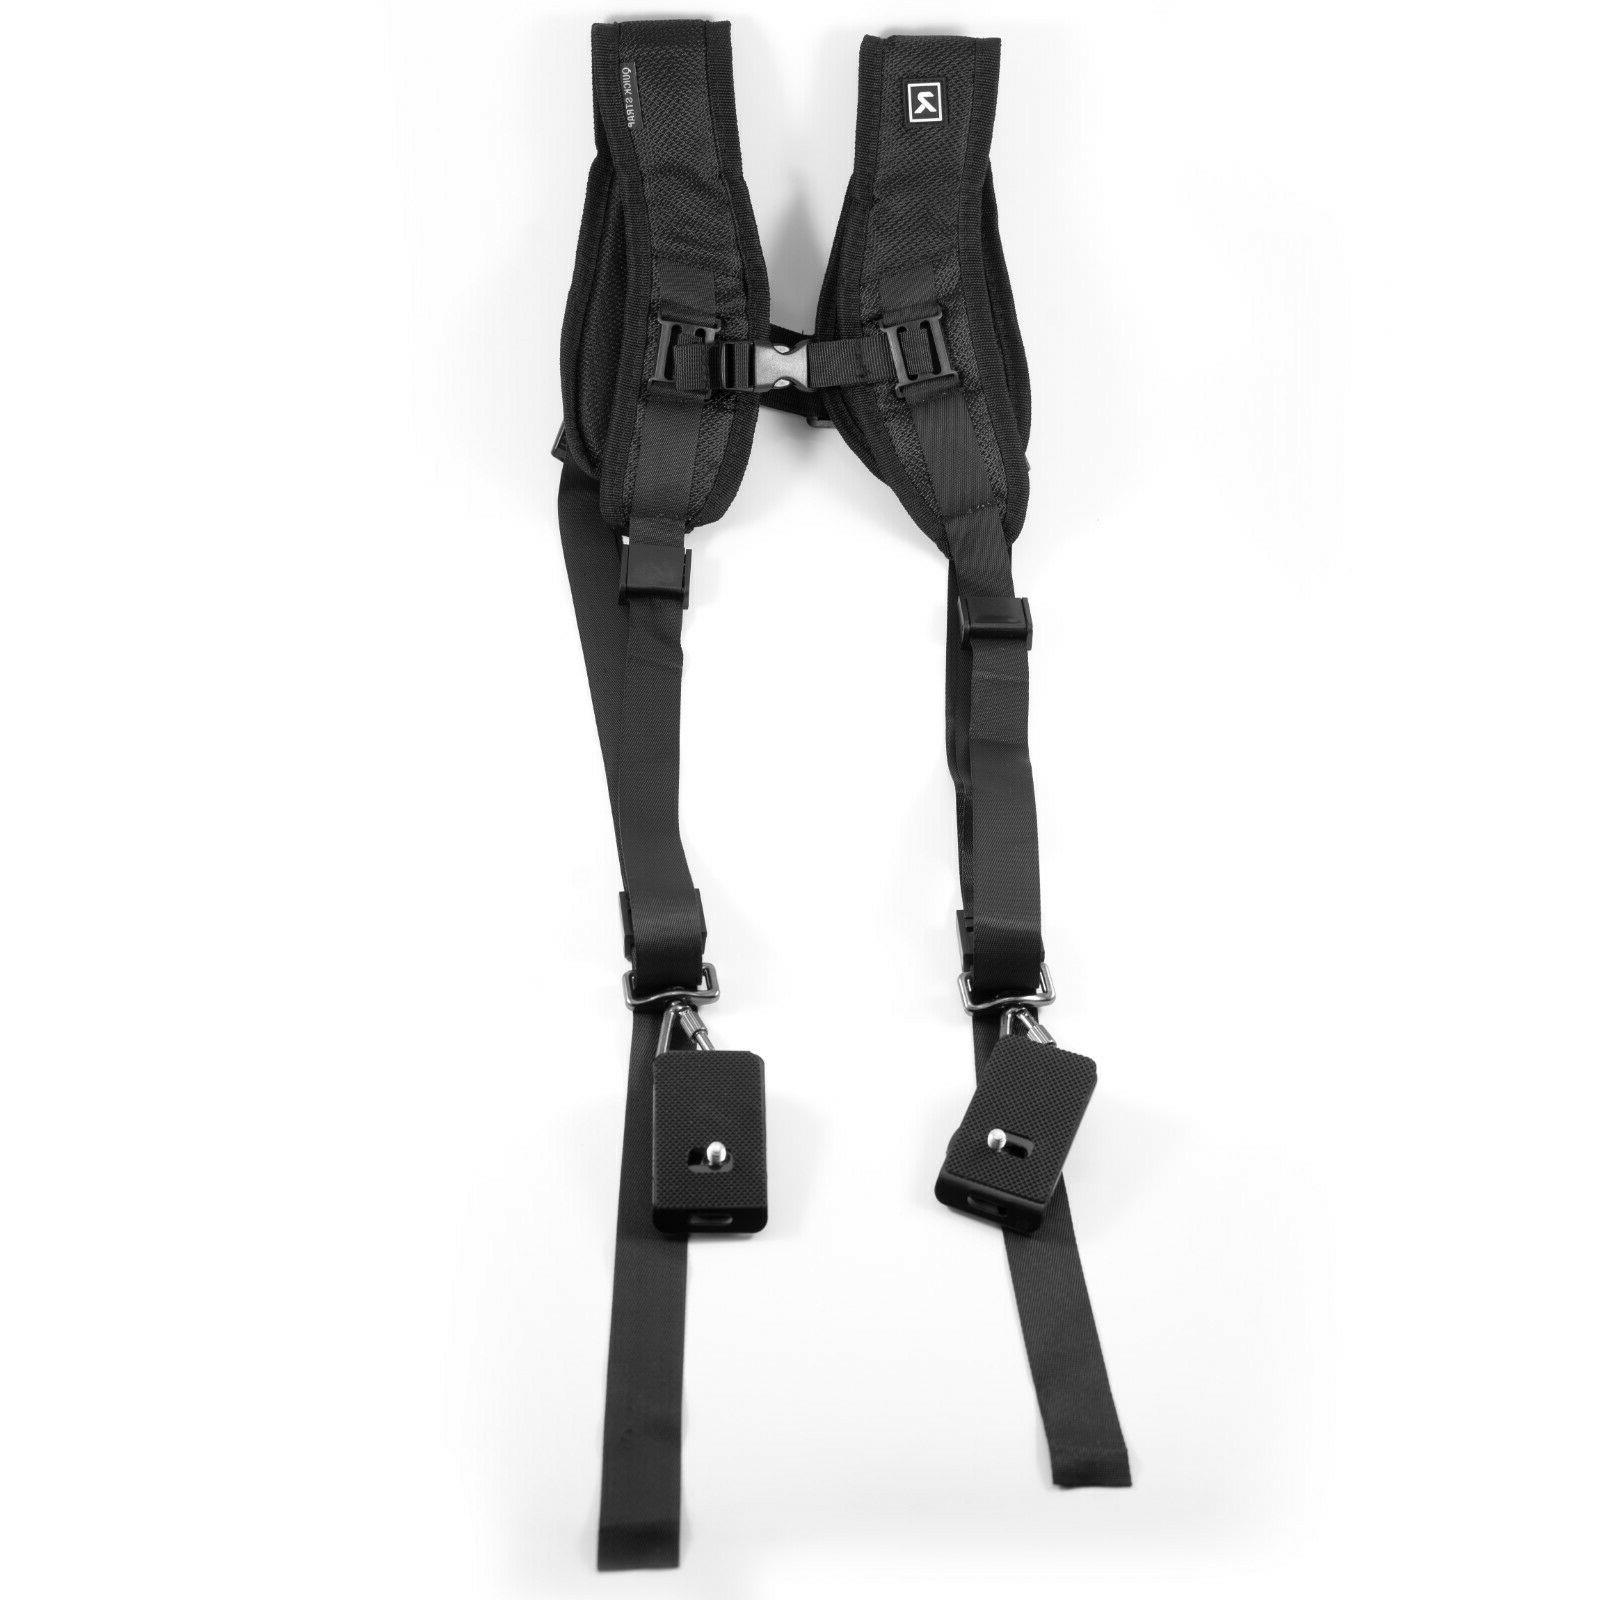 DOUBLE DUAL SHOULDER RELEASE STRAP 2 MIRRORLESS